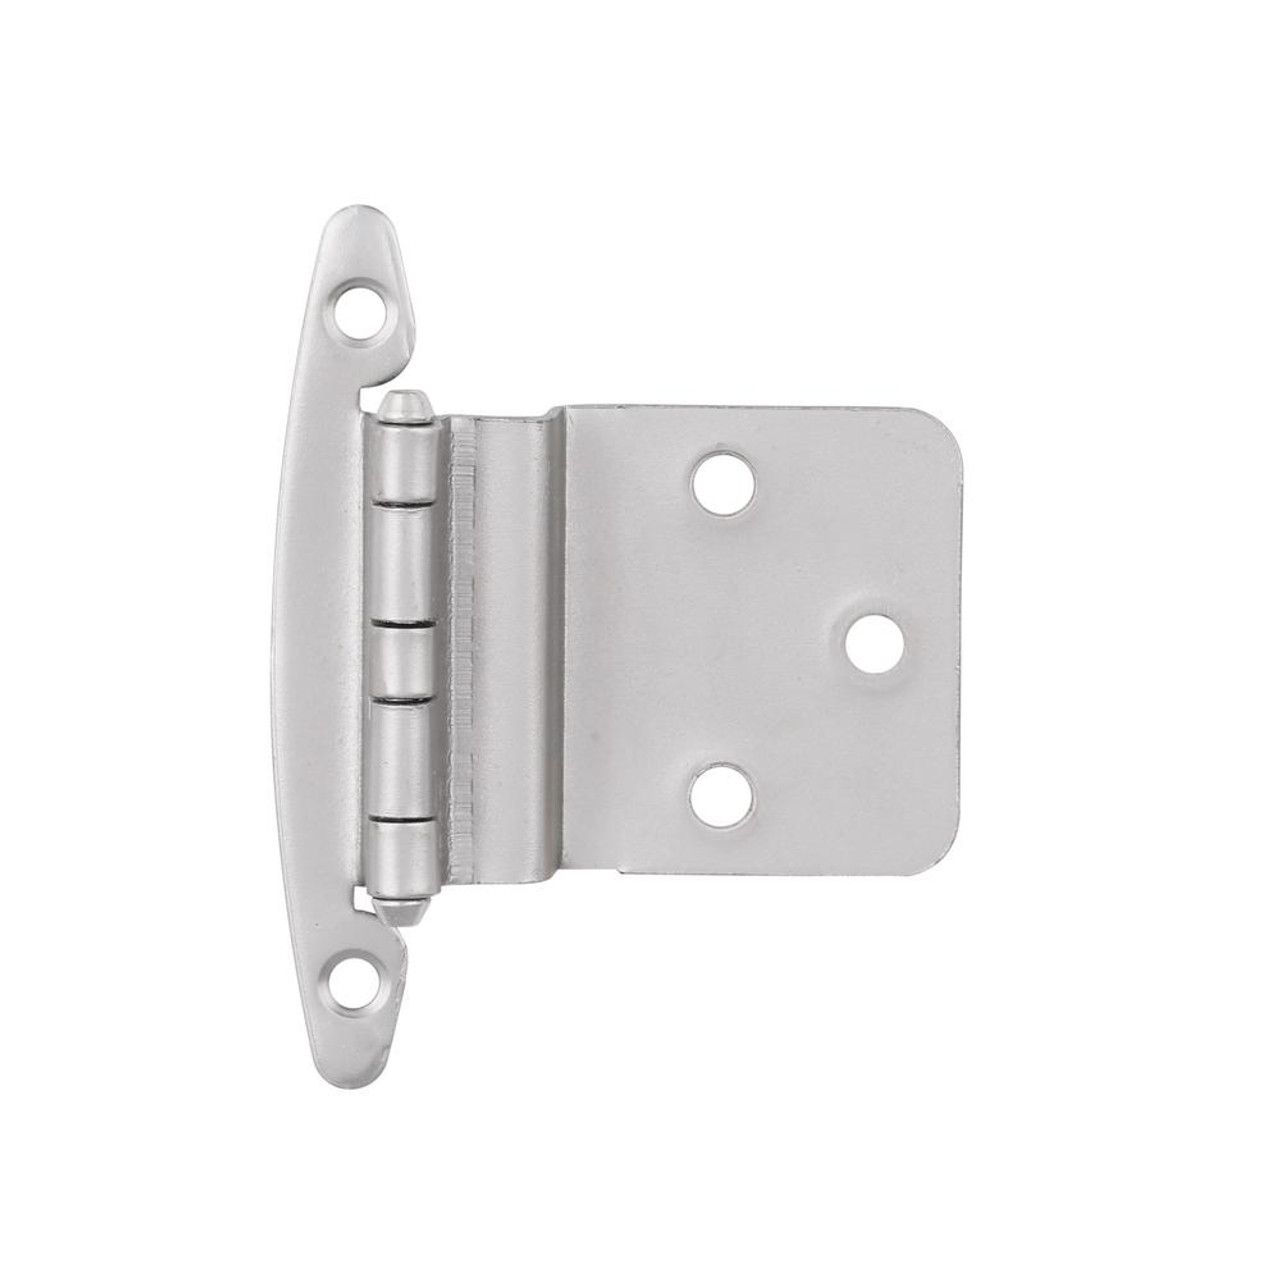 "H00930L-SN 3/8"" Self Closing Inset Hinge W/O Spring Satin Nickel 10 Pack"